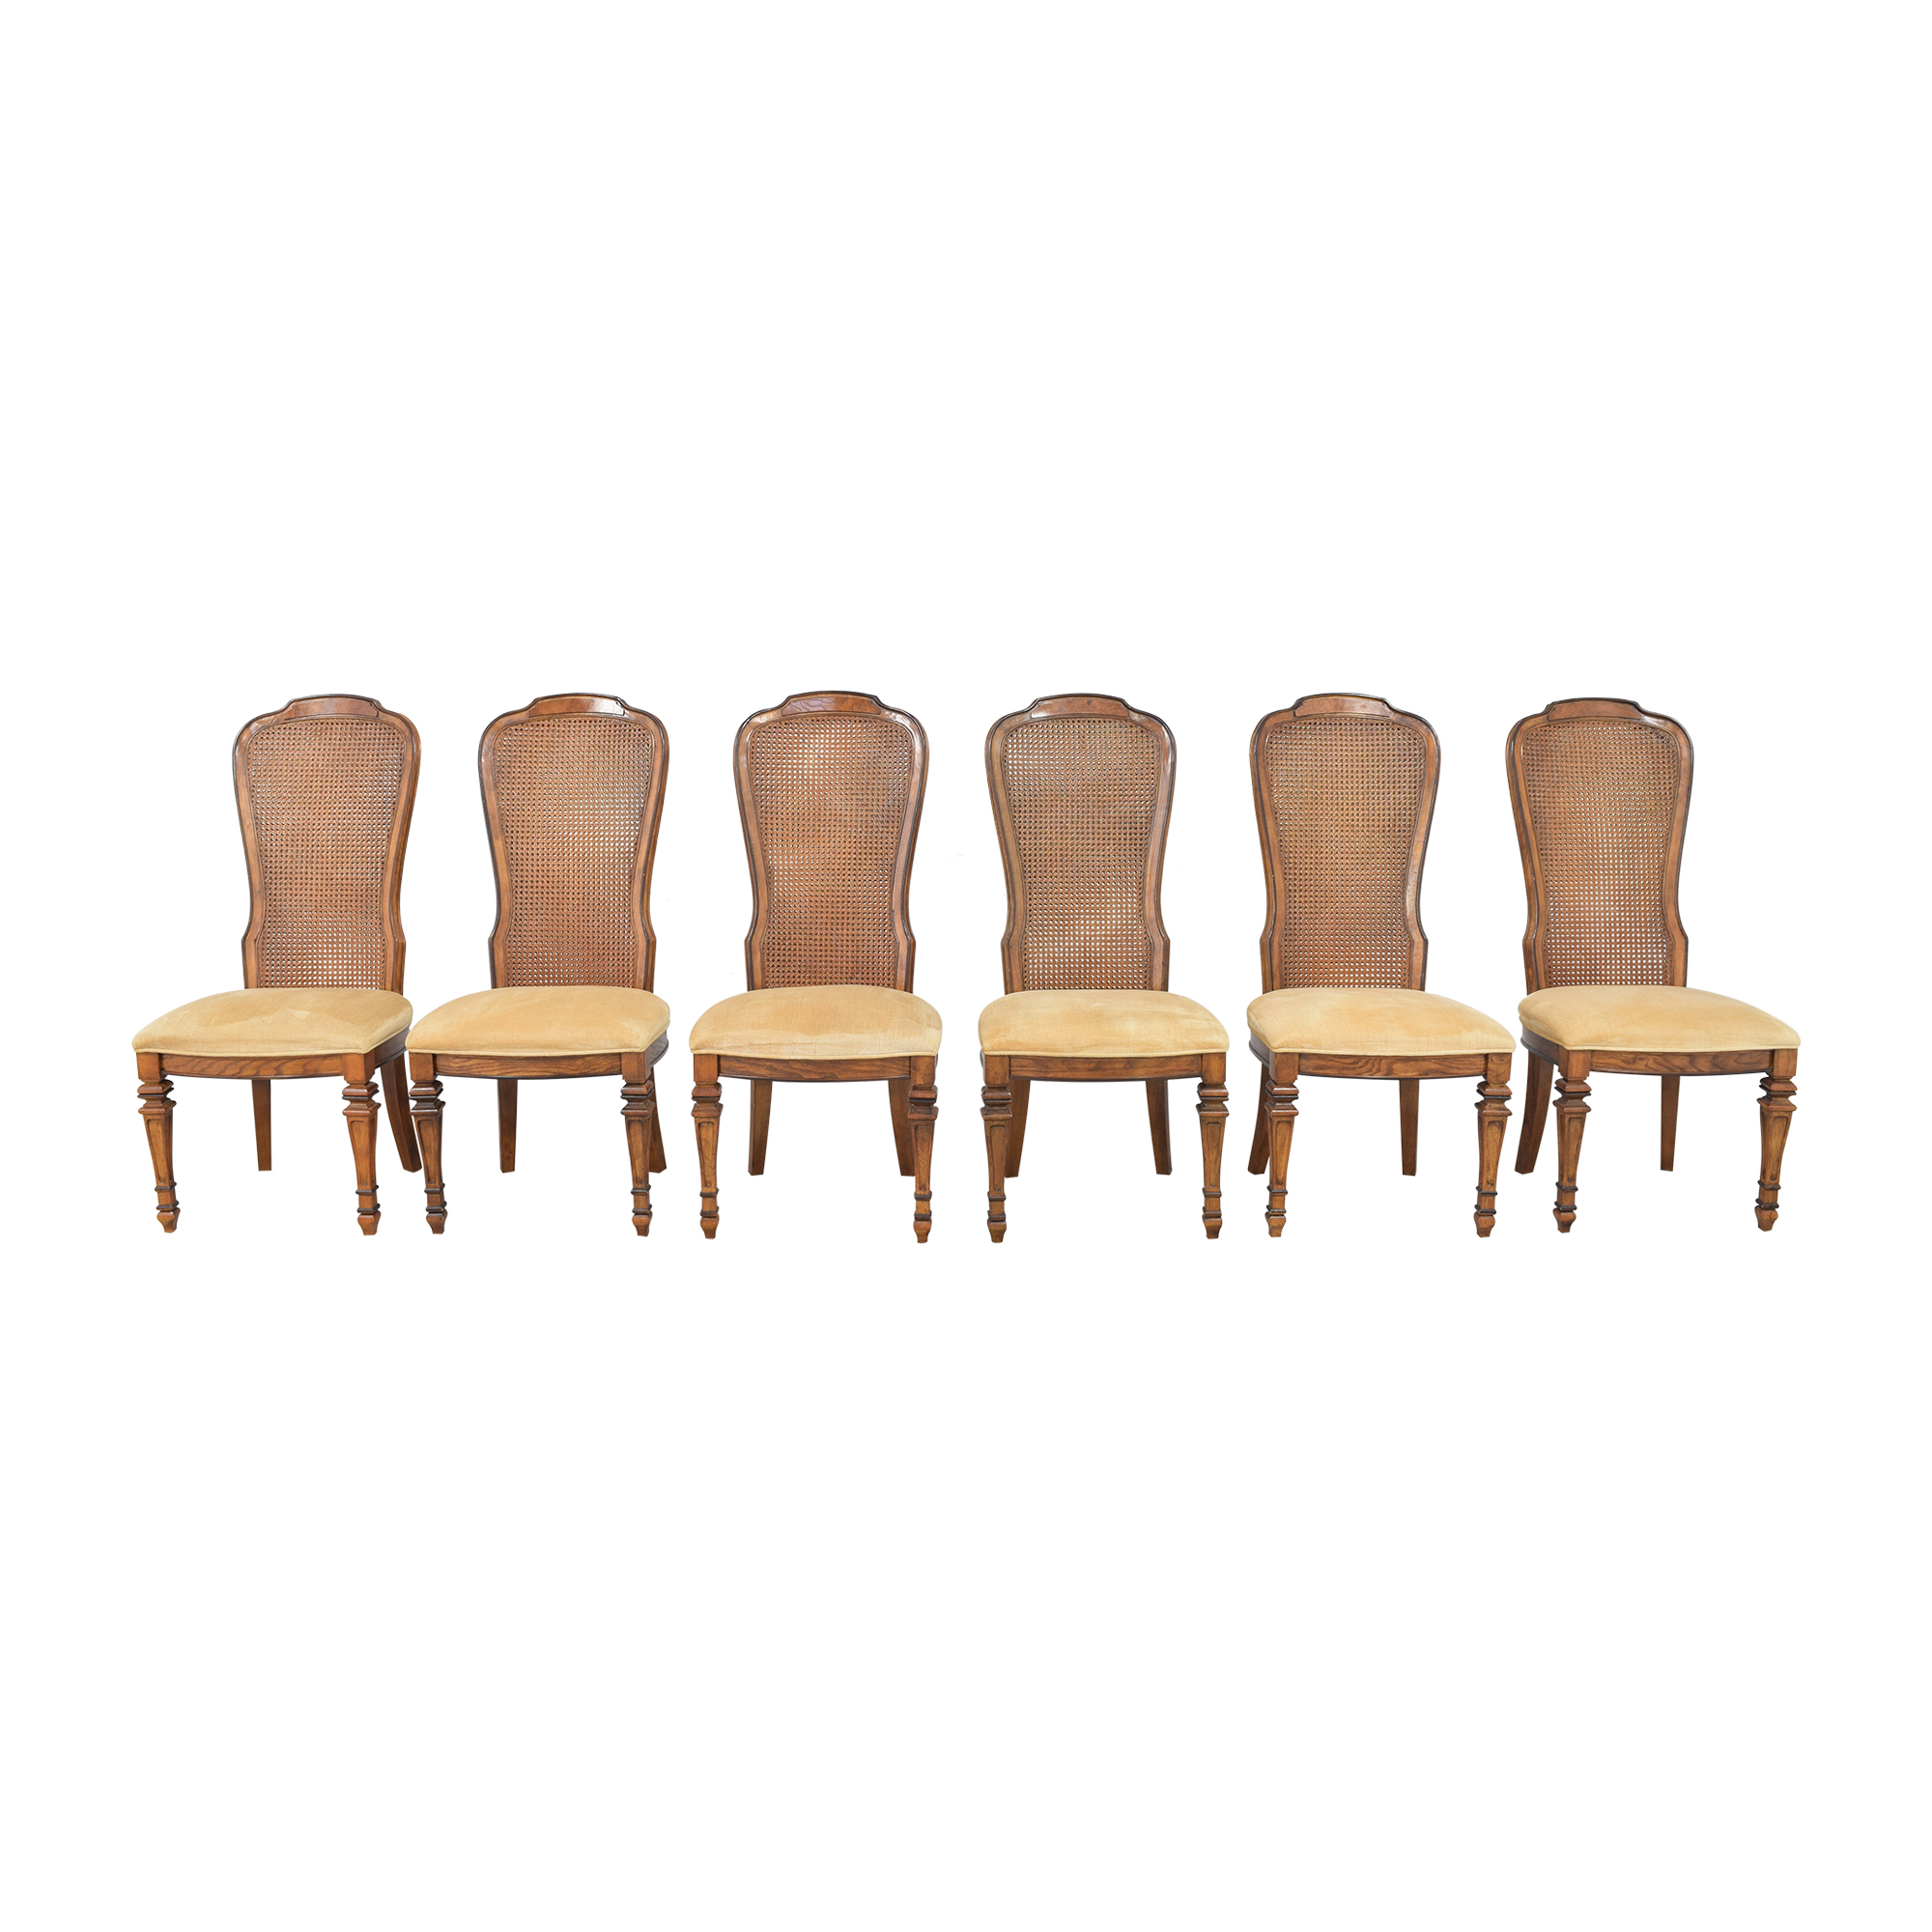 Bernhardt Upholstered Dining Chairs sale